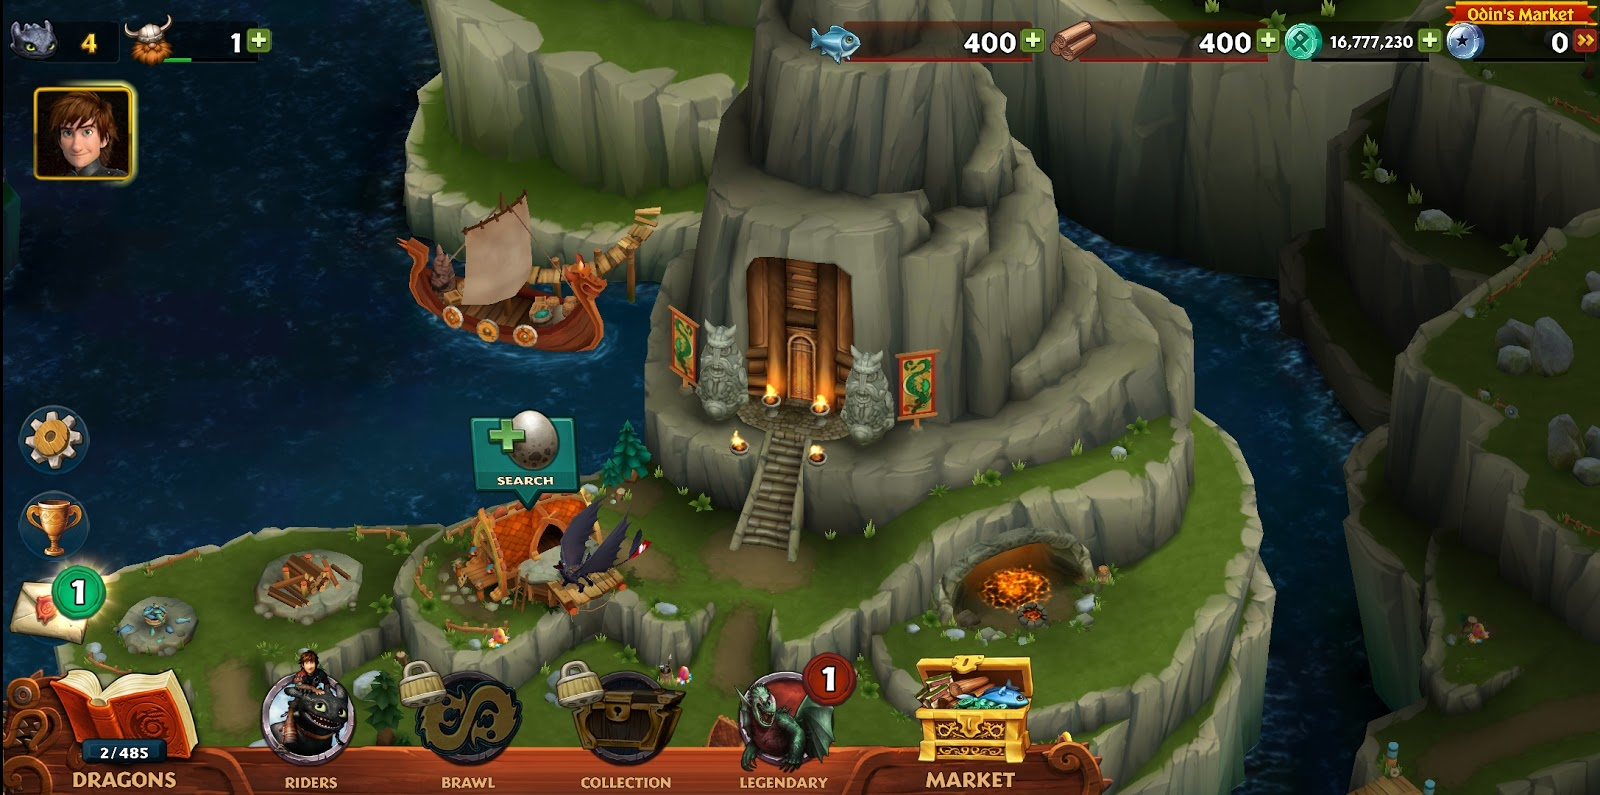 rise of berk hack mod apk download